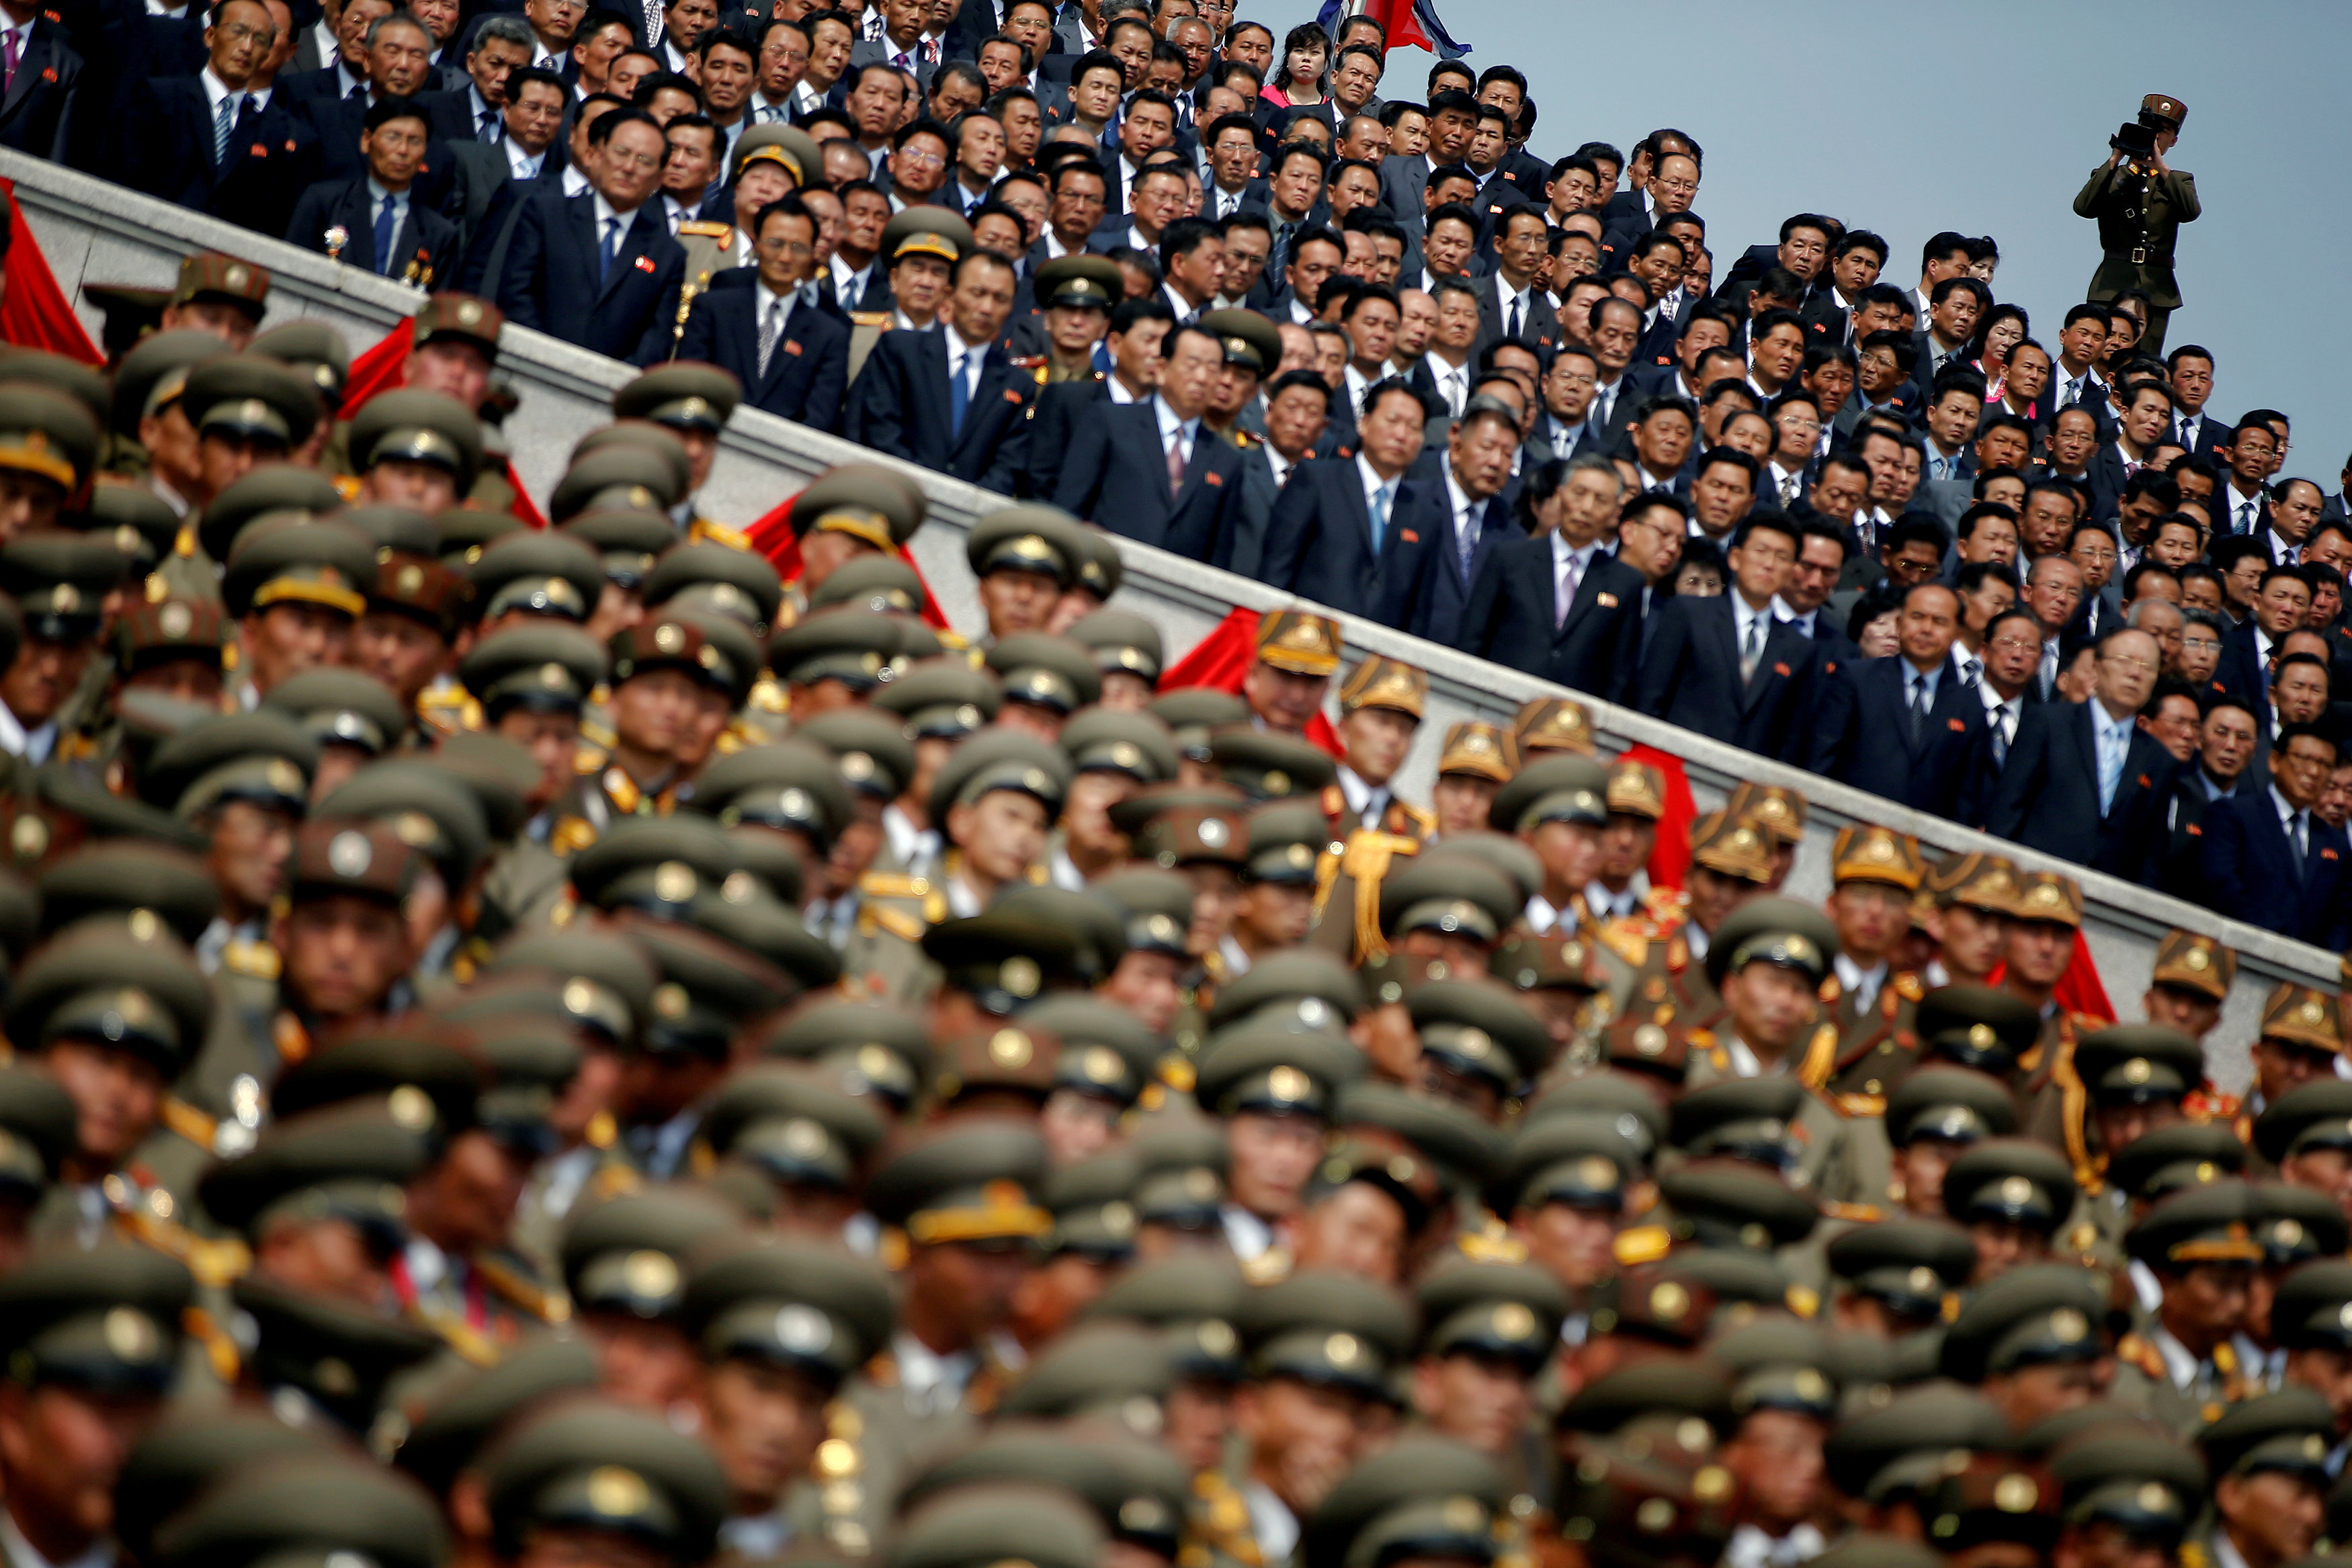 A soldier films North Korean soldiers, officers and high ranking officials attending a military parade marking the 105th birth anniversary of country's founding father Kim Il Sung in Pyongyang, North Korea on April 15, 2017. (REUTERS/Damir Sagolj)